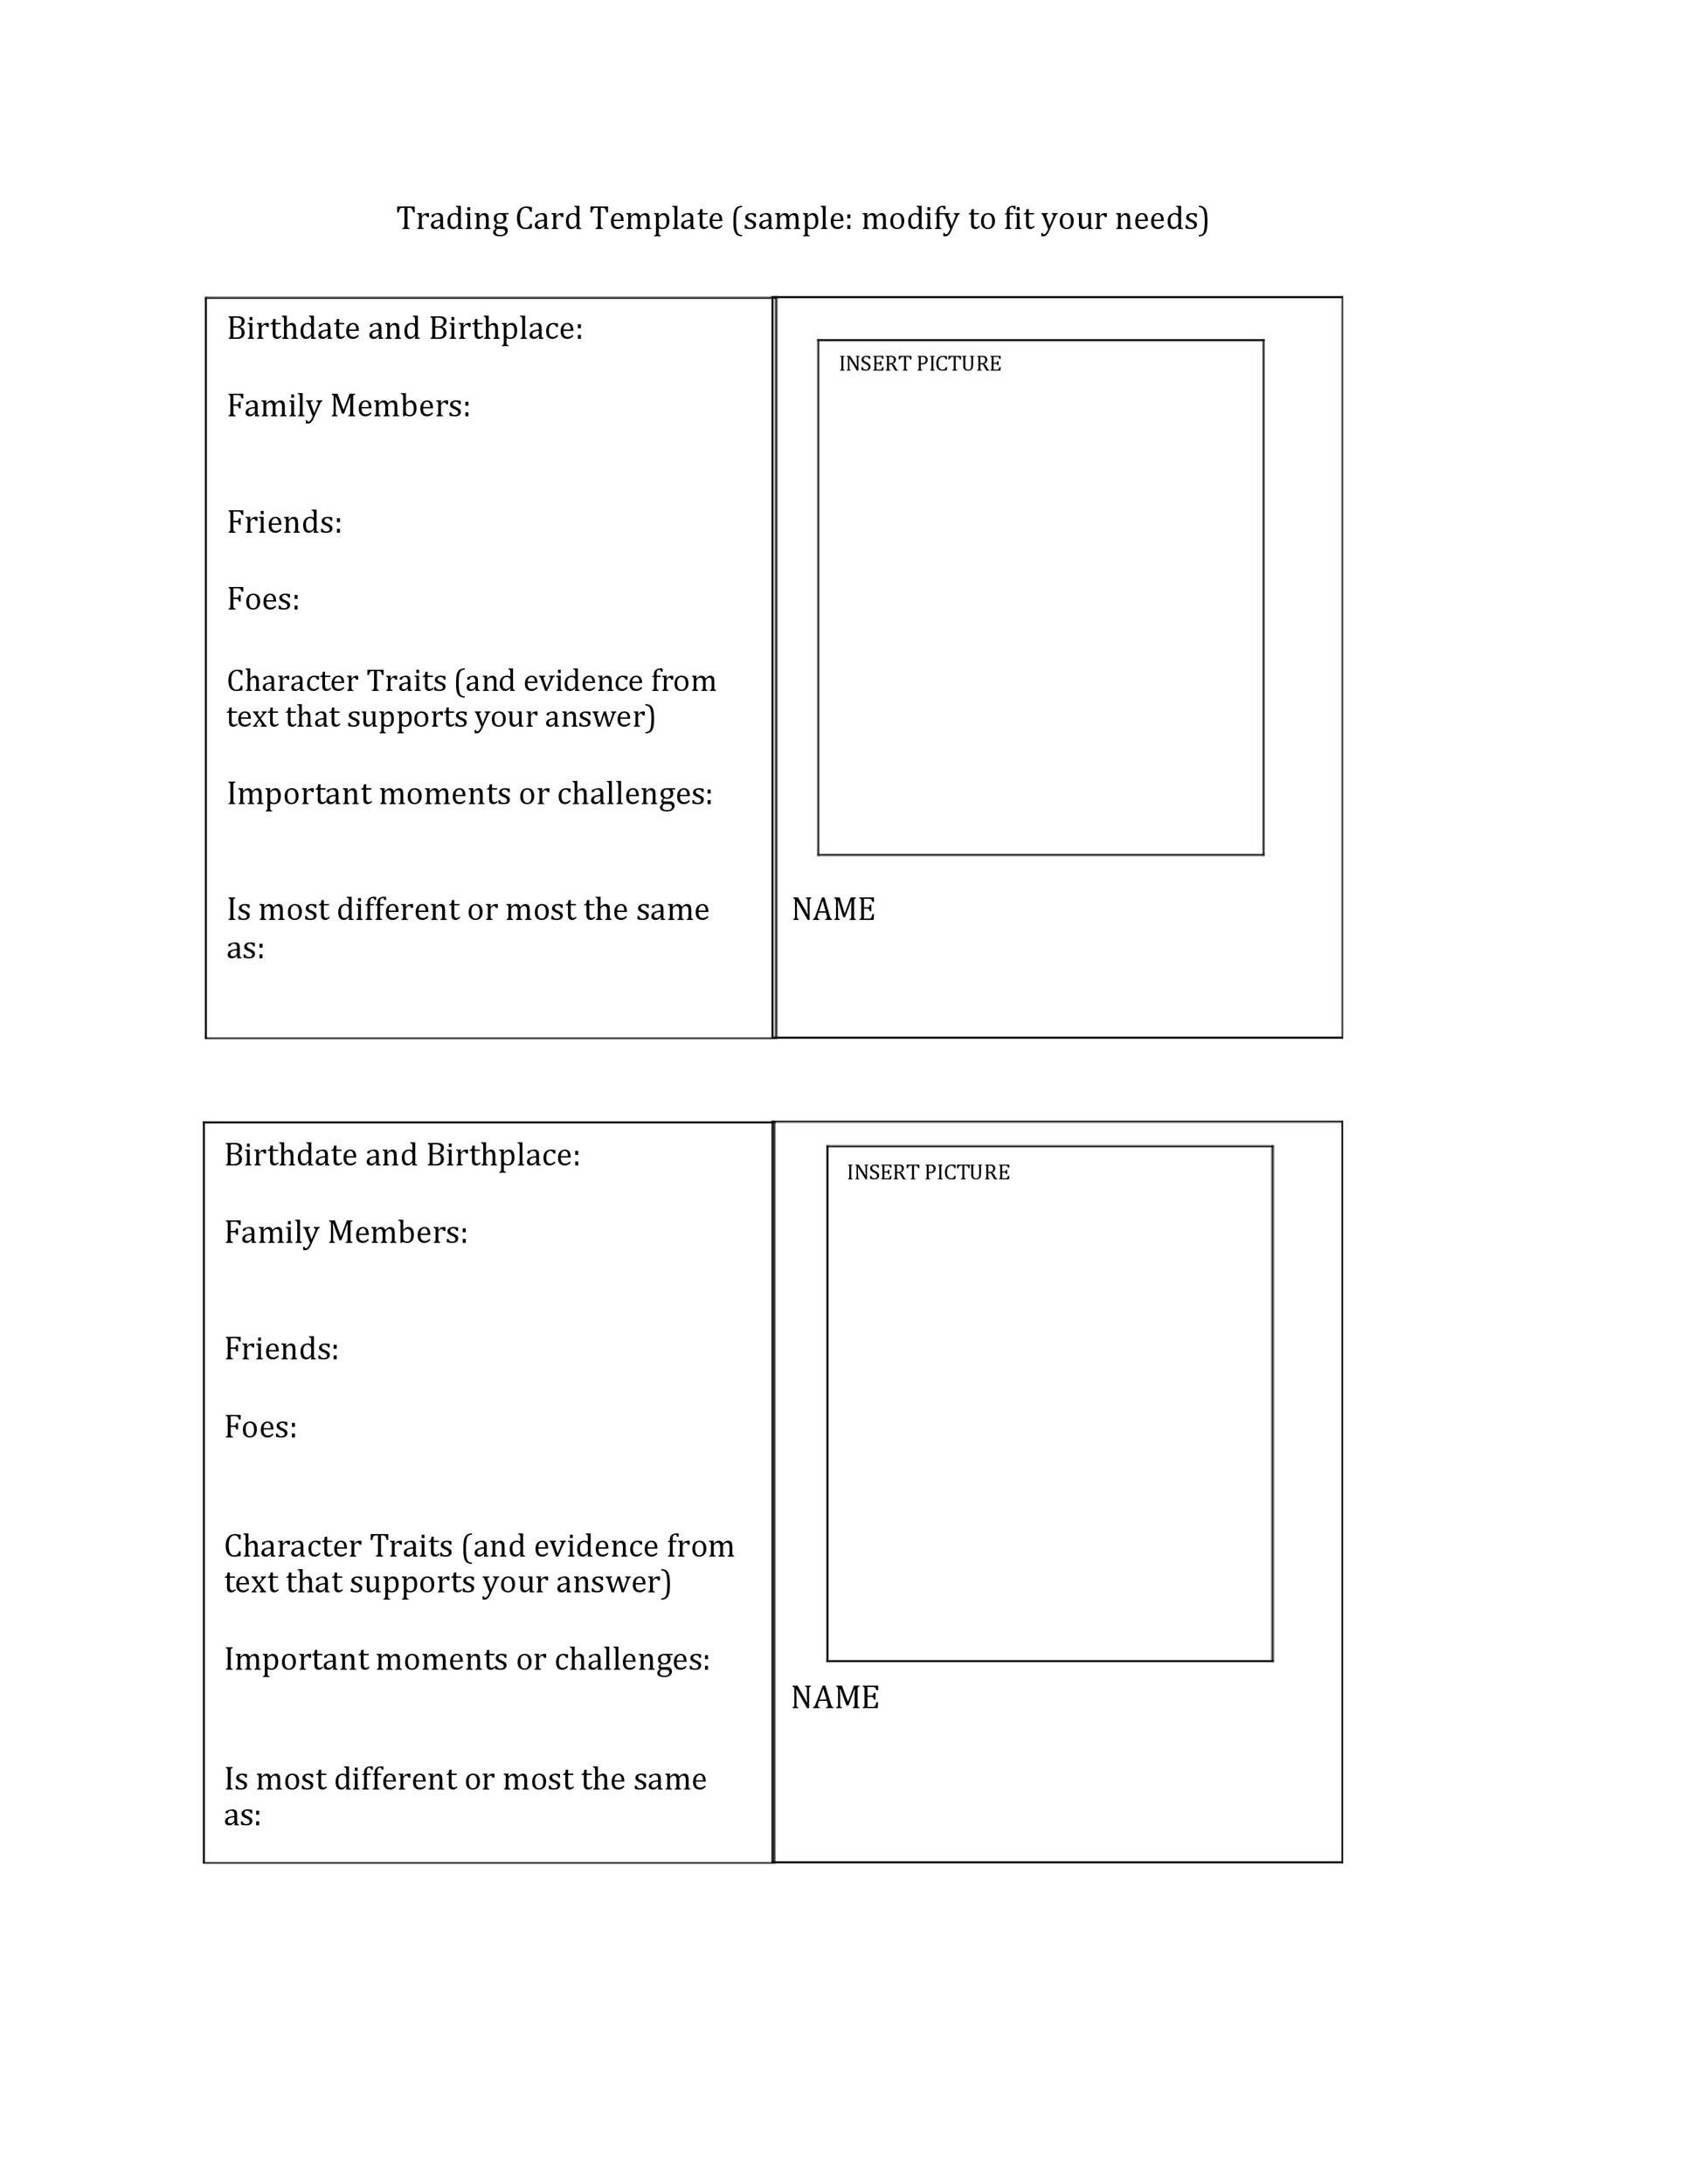 Blank Game Card Template In 2021 Trading Card Template Baseball Card Template Card Template